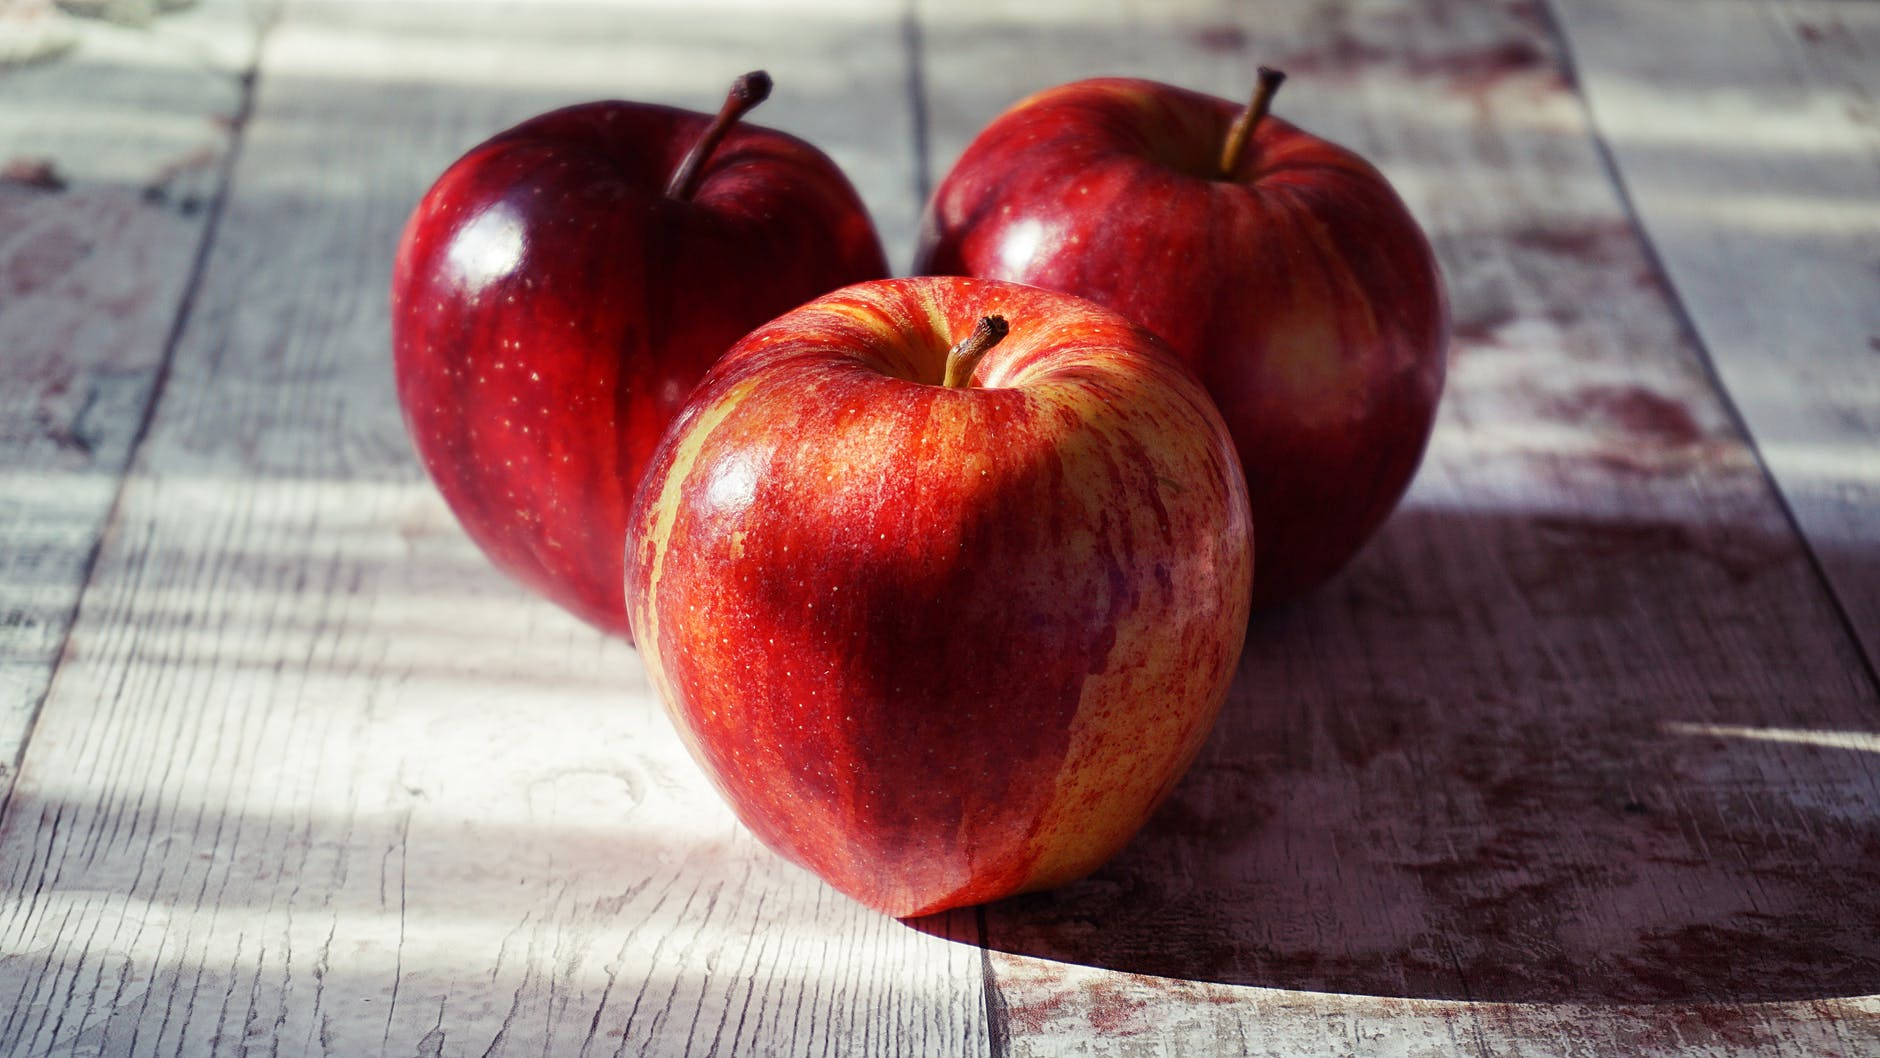 three red apples on wooden surface